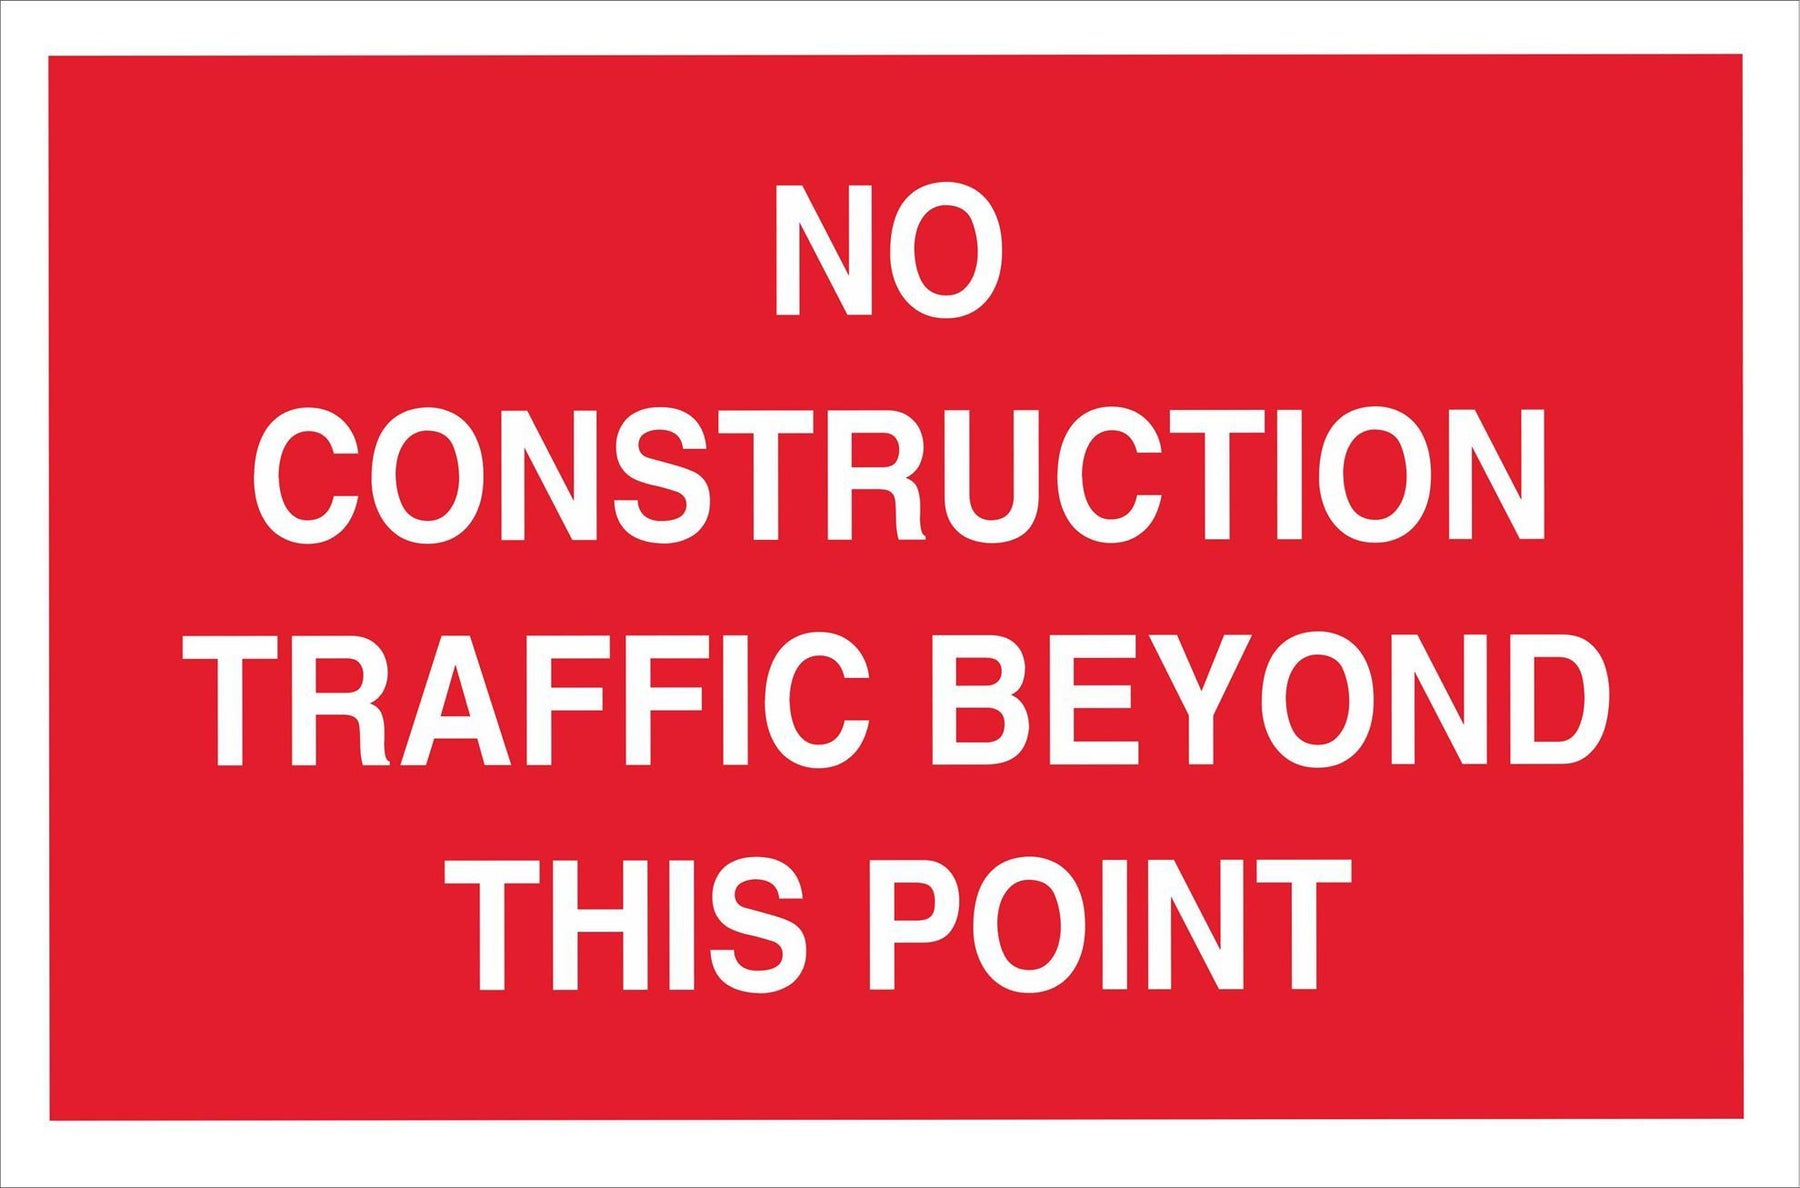 NO CONSTRUCTION TRAFFIC BEYOND THIS POINT